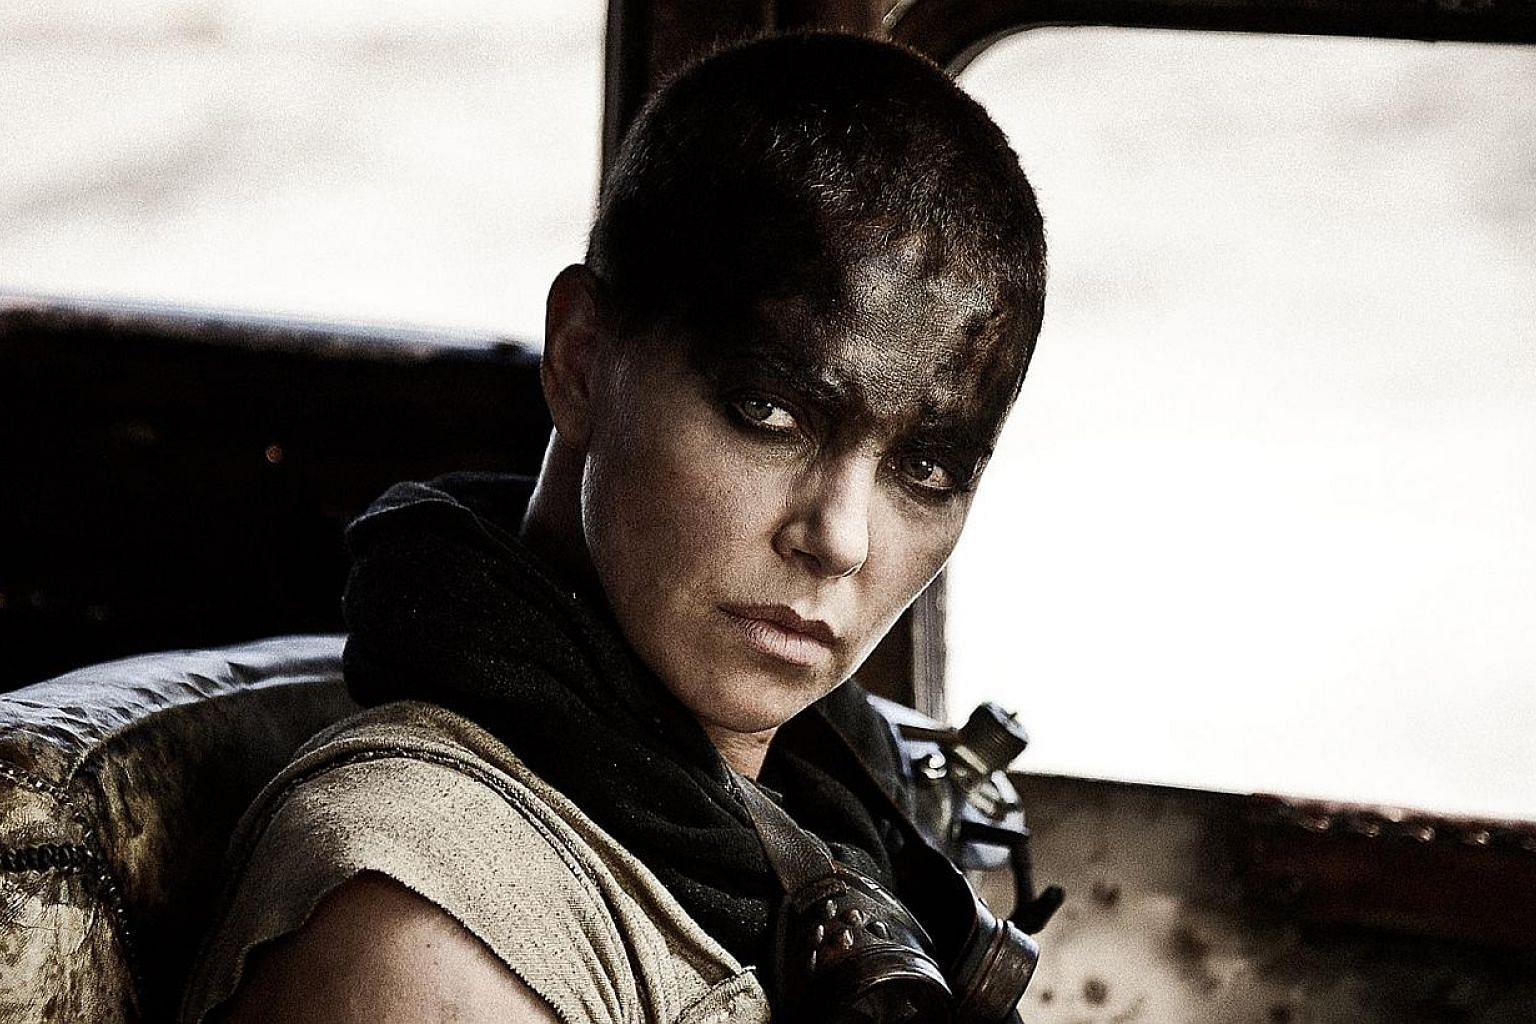 Mad Max: Fury Road, starring British actor Tom Hardy andCharlize Theron (above).The film will have its world premiere on May 14 at the Cannes Film Festival.-- PHOTO: GOLDEN VILLAGE PICTURES